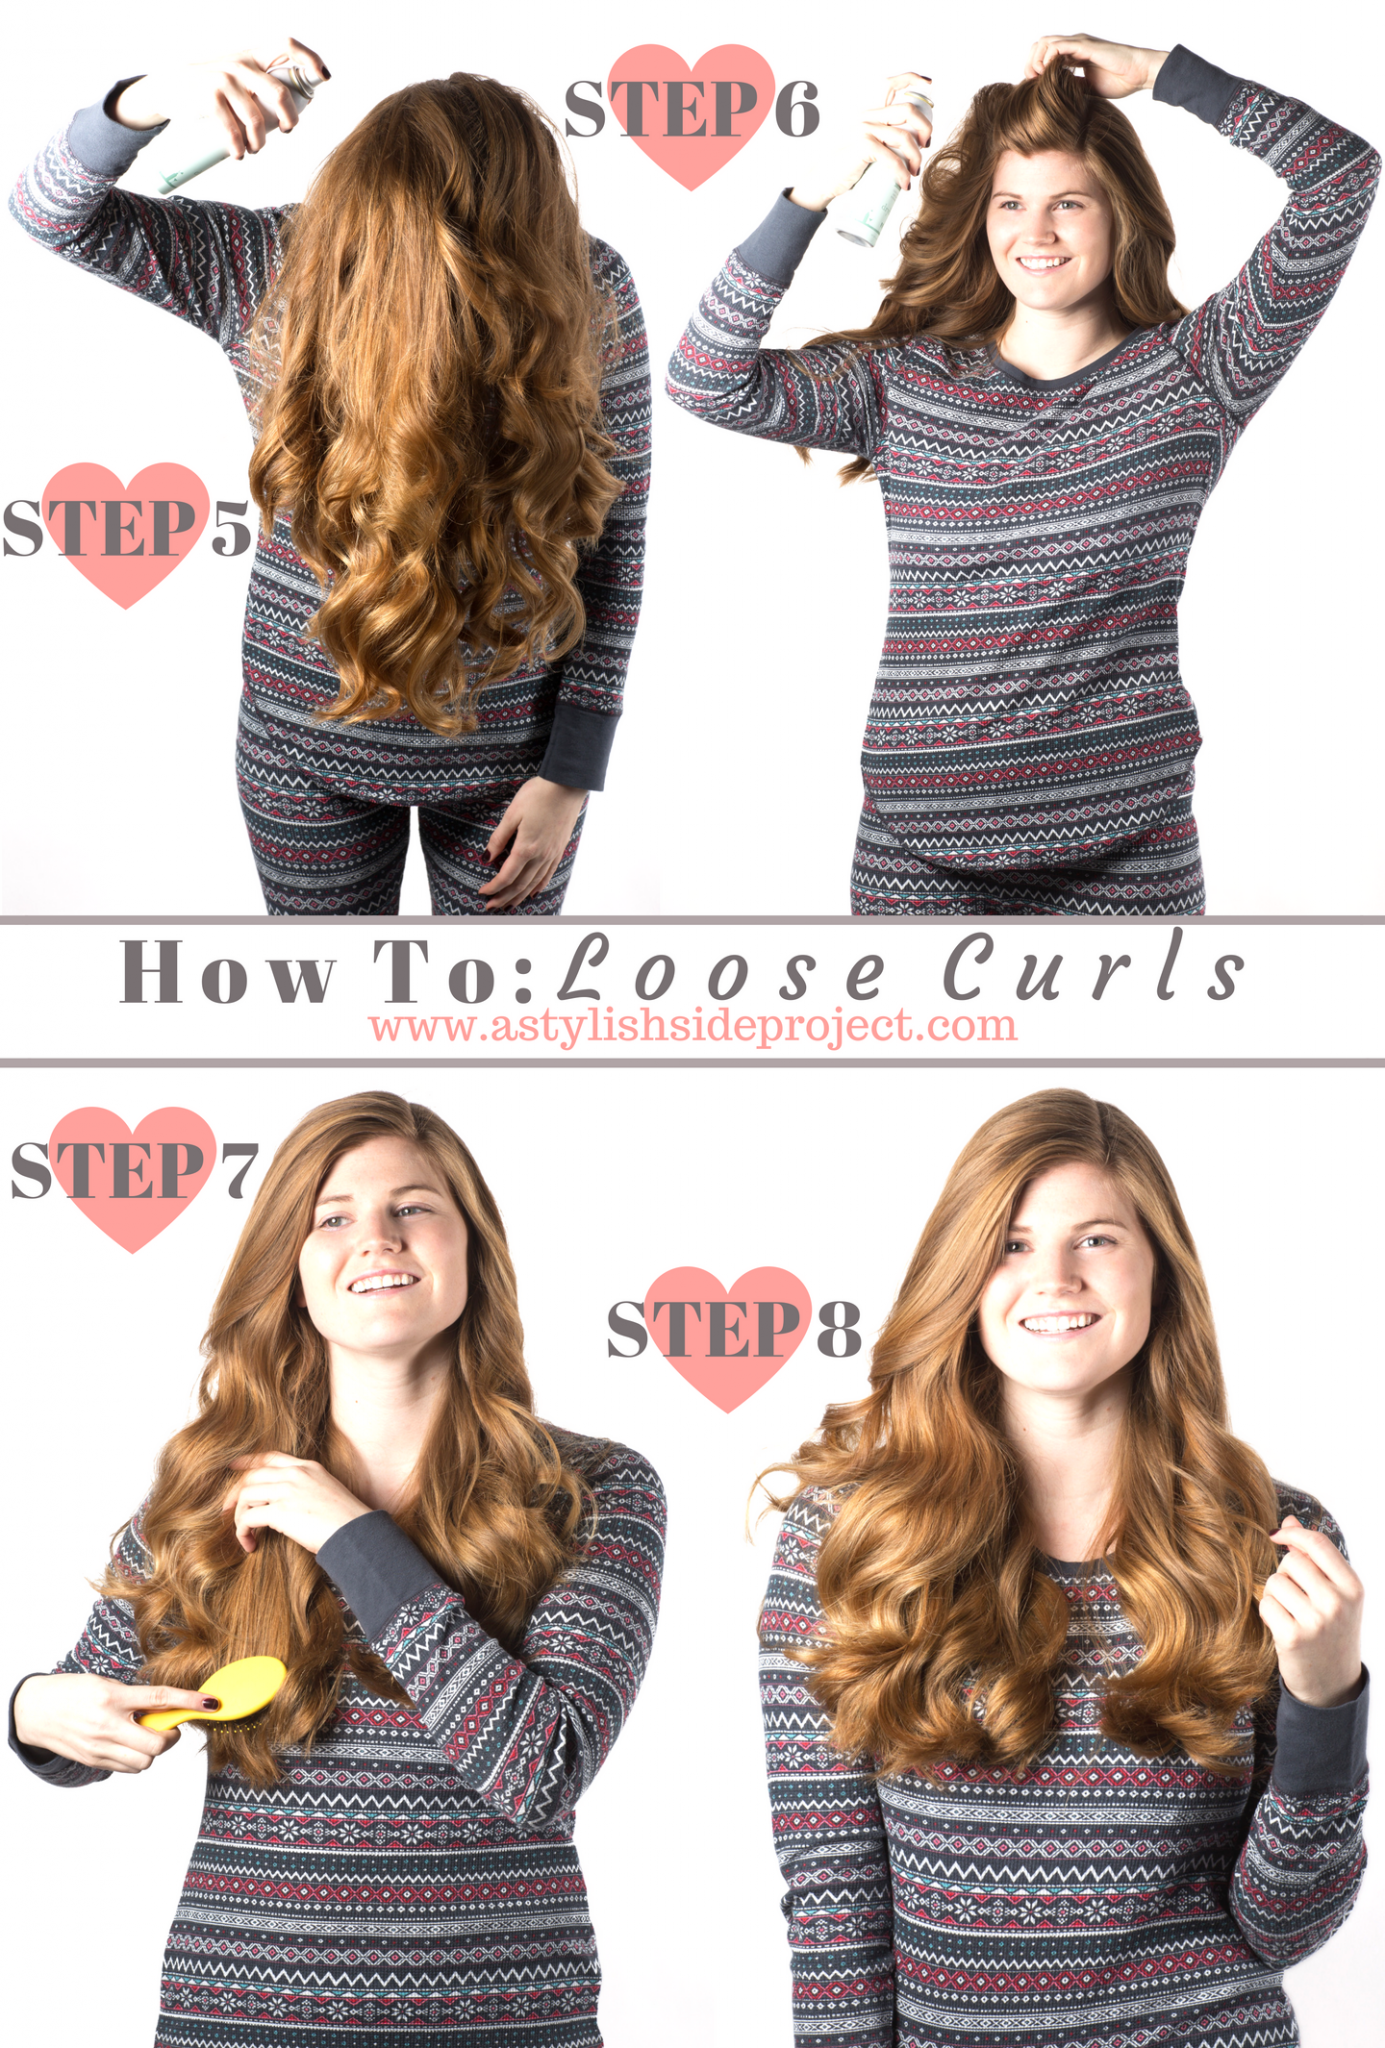 Lifestyle blogger Mollie Sheperdson shares how she gets her everyday loose curls in this detailed hair tutorial!